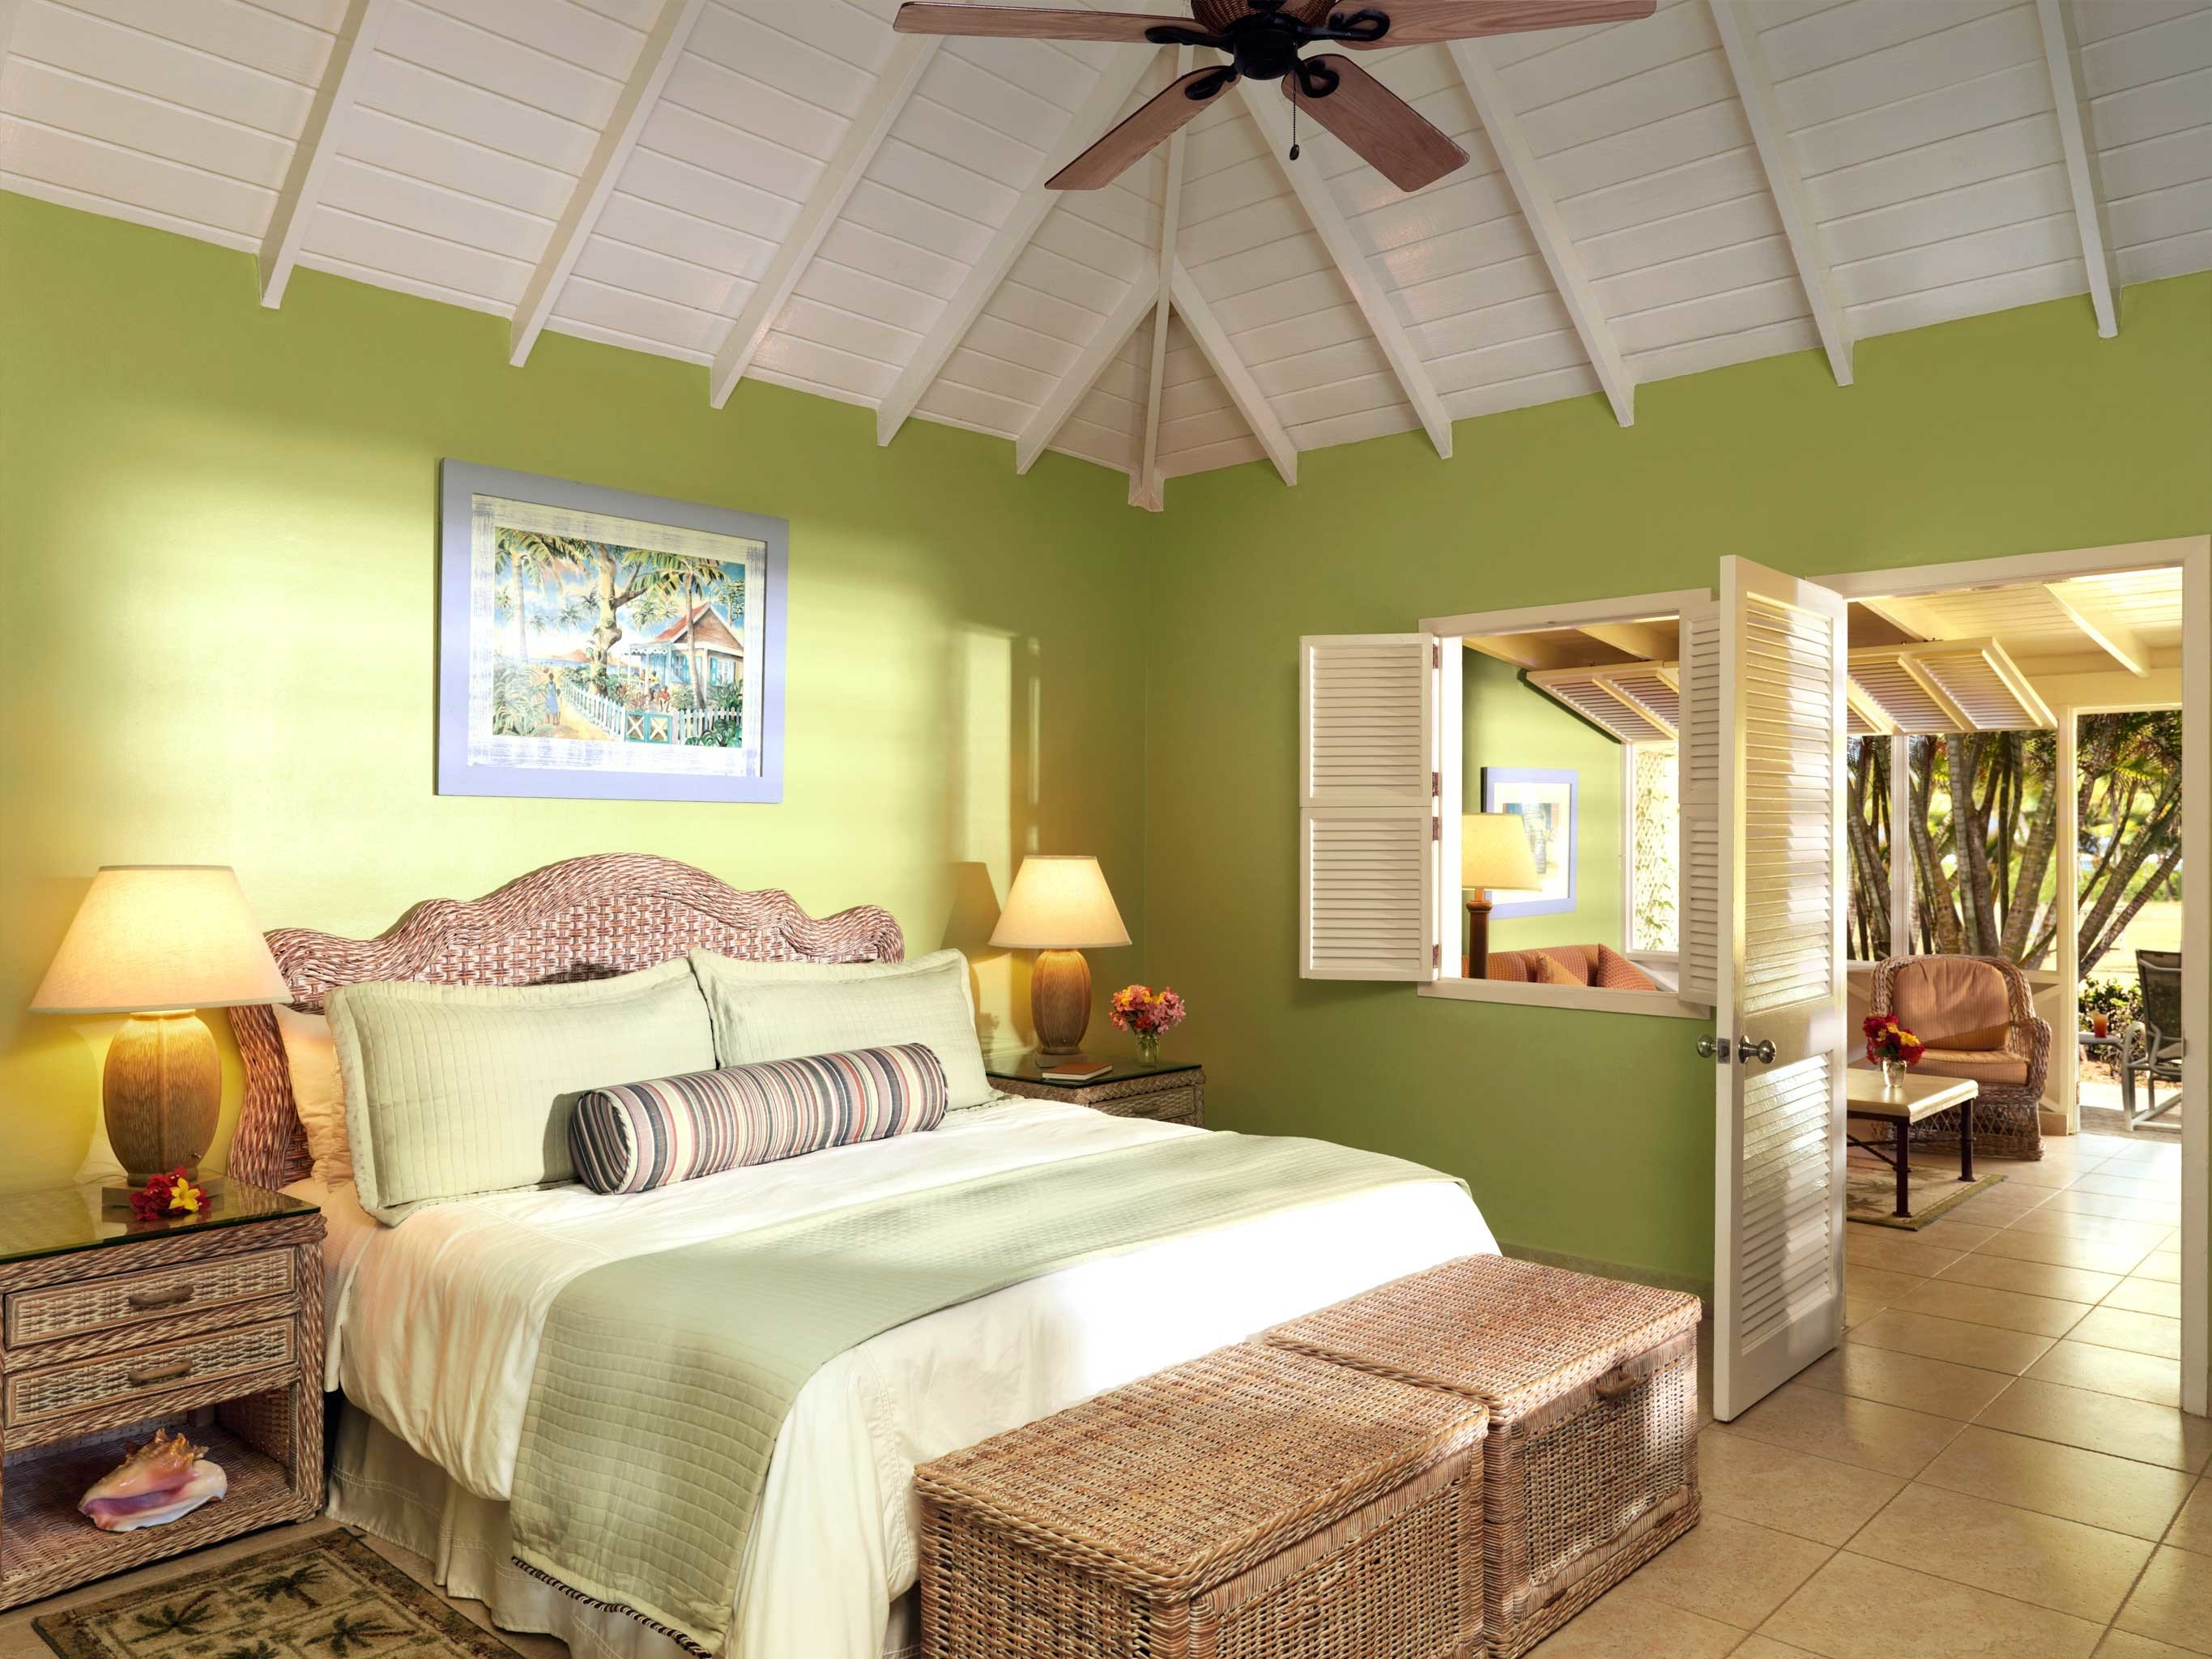 Balcony Beach Bedroom Hotels Islands Living Lounge Luxury Luxury Travel Suite Trip Ideas indoor floor wall room property ceiling estate bed home interior design cottage real estate living room furniture farmhouse Villa Resort area